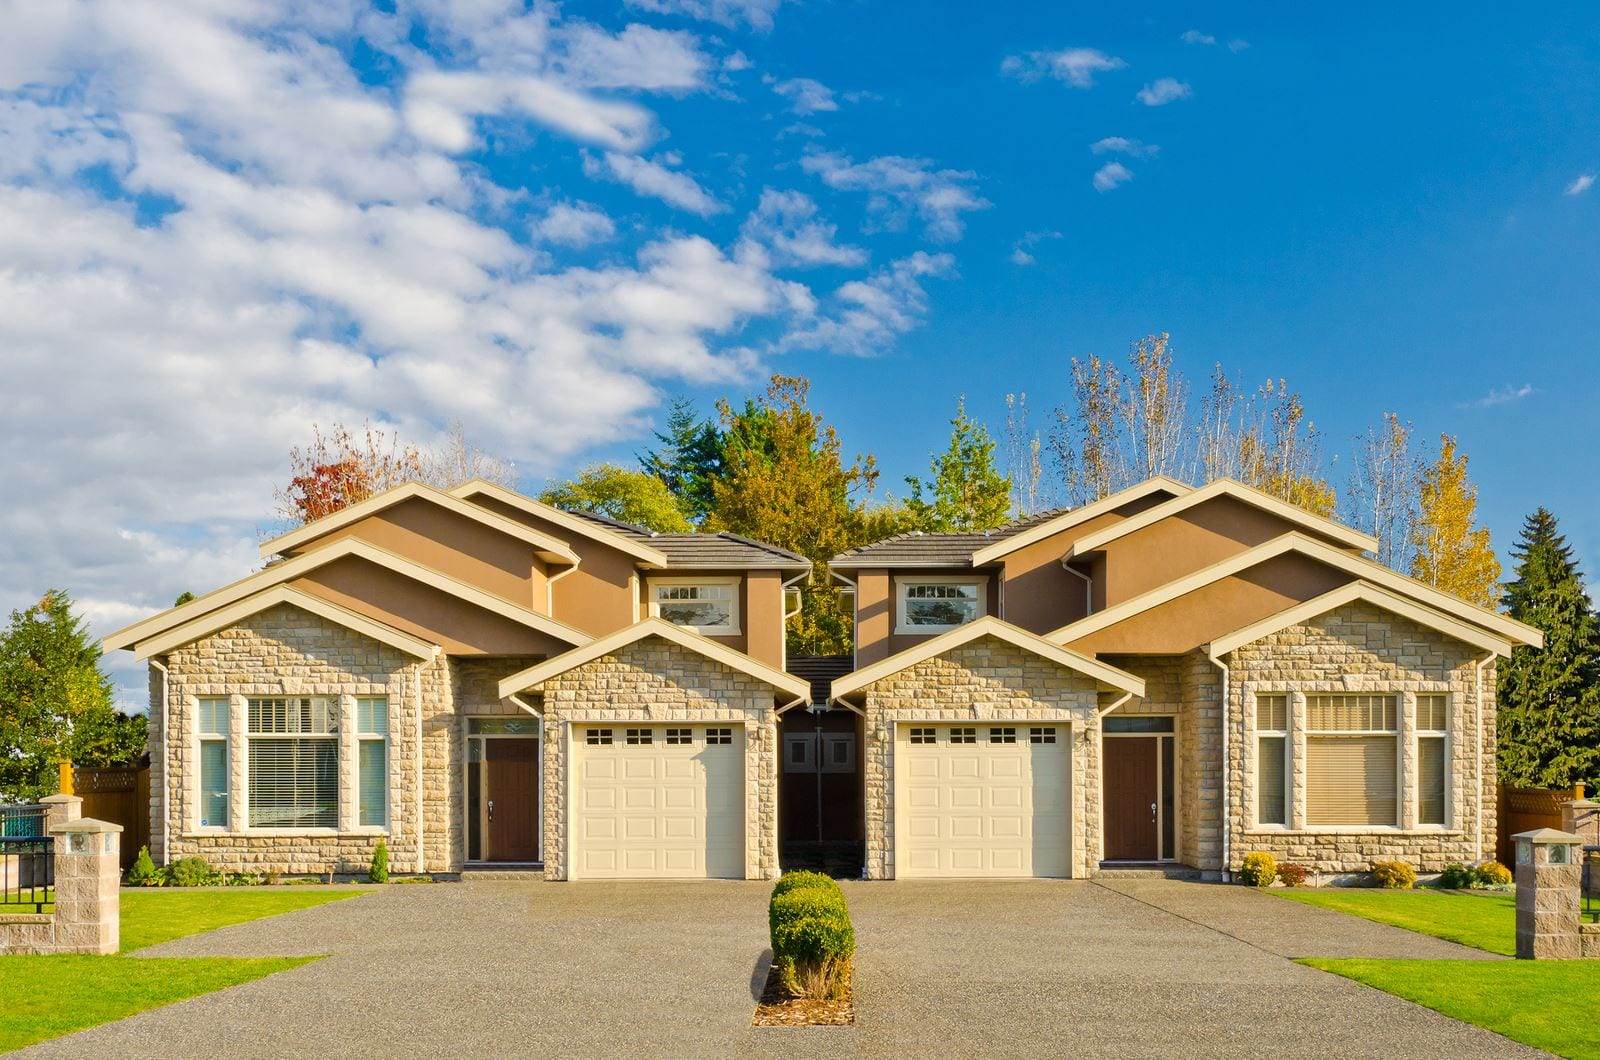 Residential real estate investment strategies skyrim investing benefits